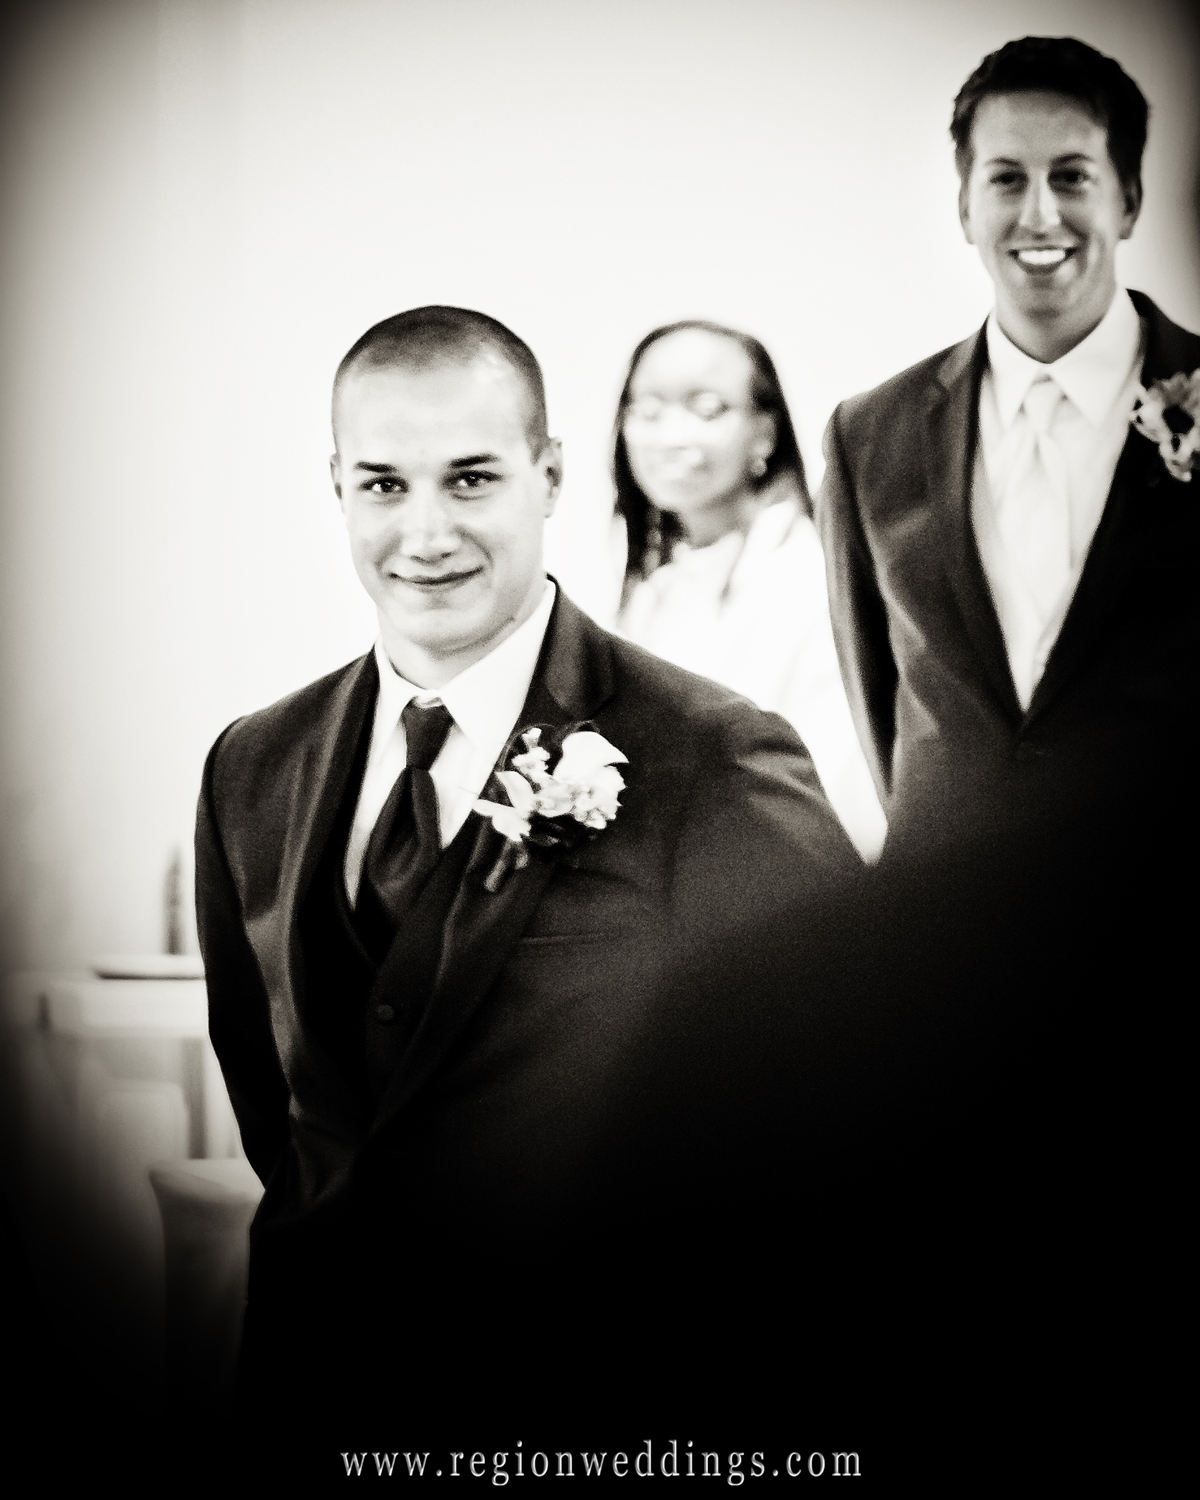 The groom looks on happily as his new bride comes down the aisle at their June wedding in Homewood, Illinois.